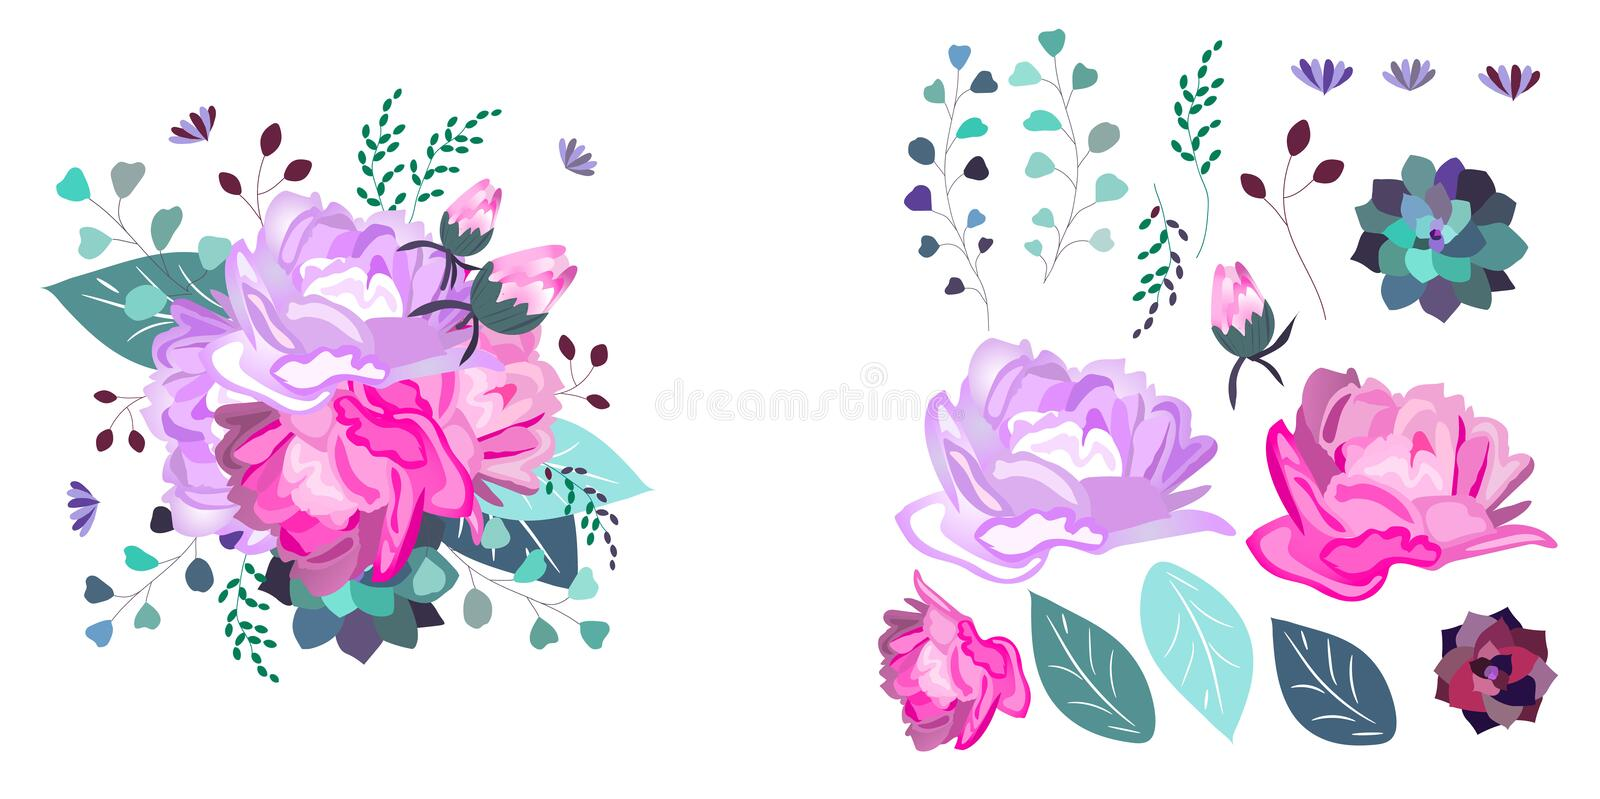 Vector floral composition and isolated objects. Summer,spring,celebration design. vector illustration